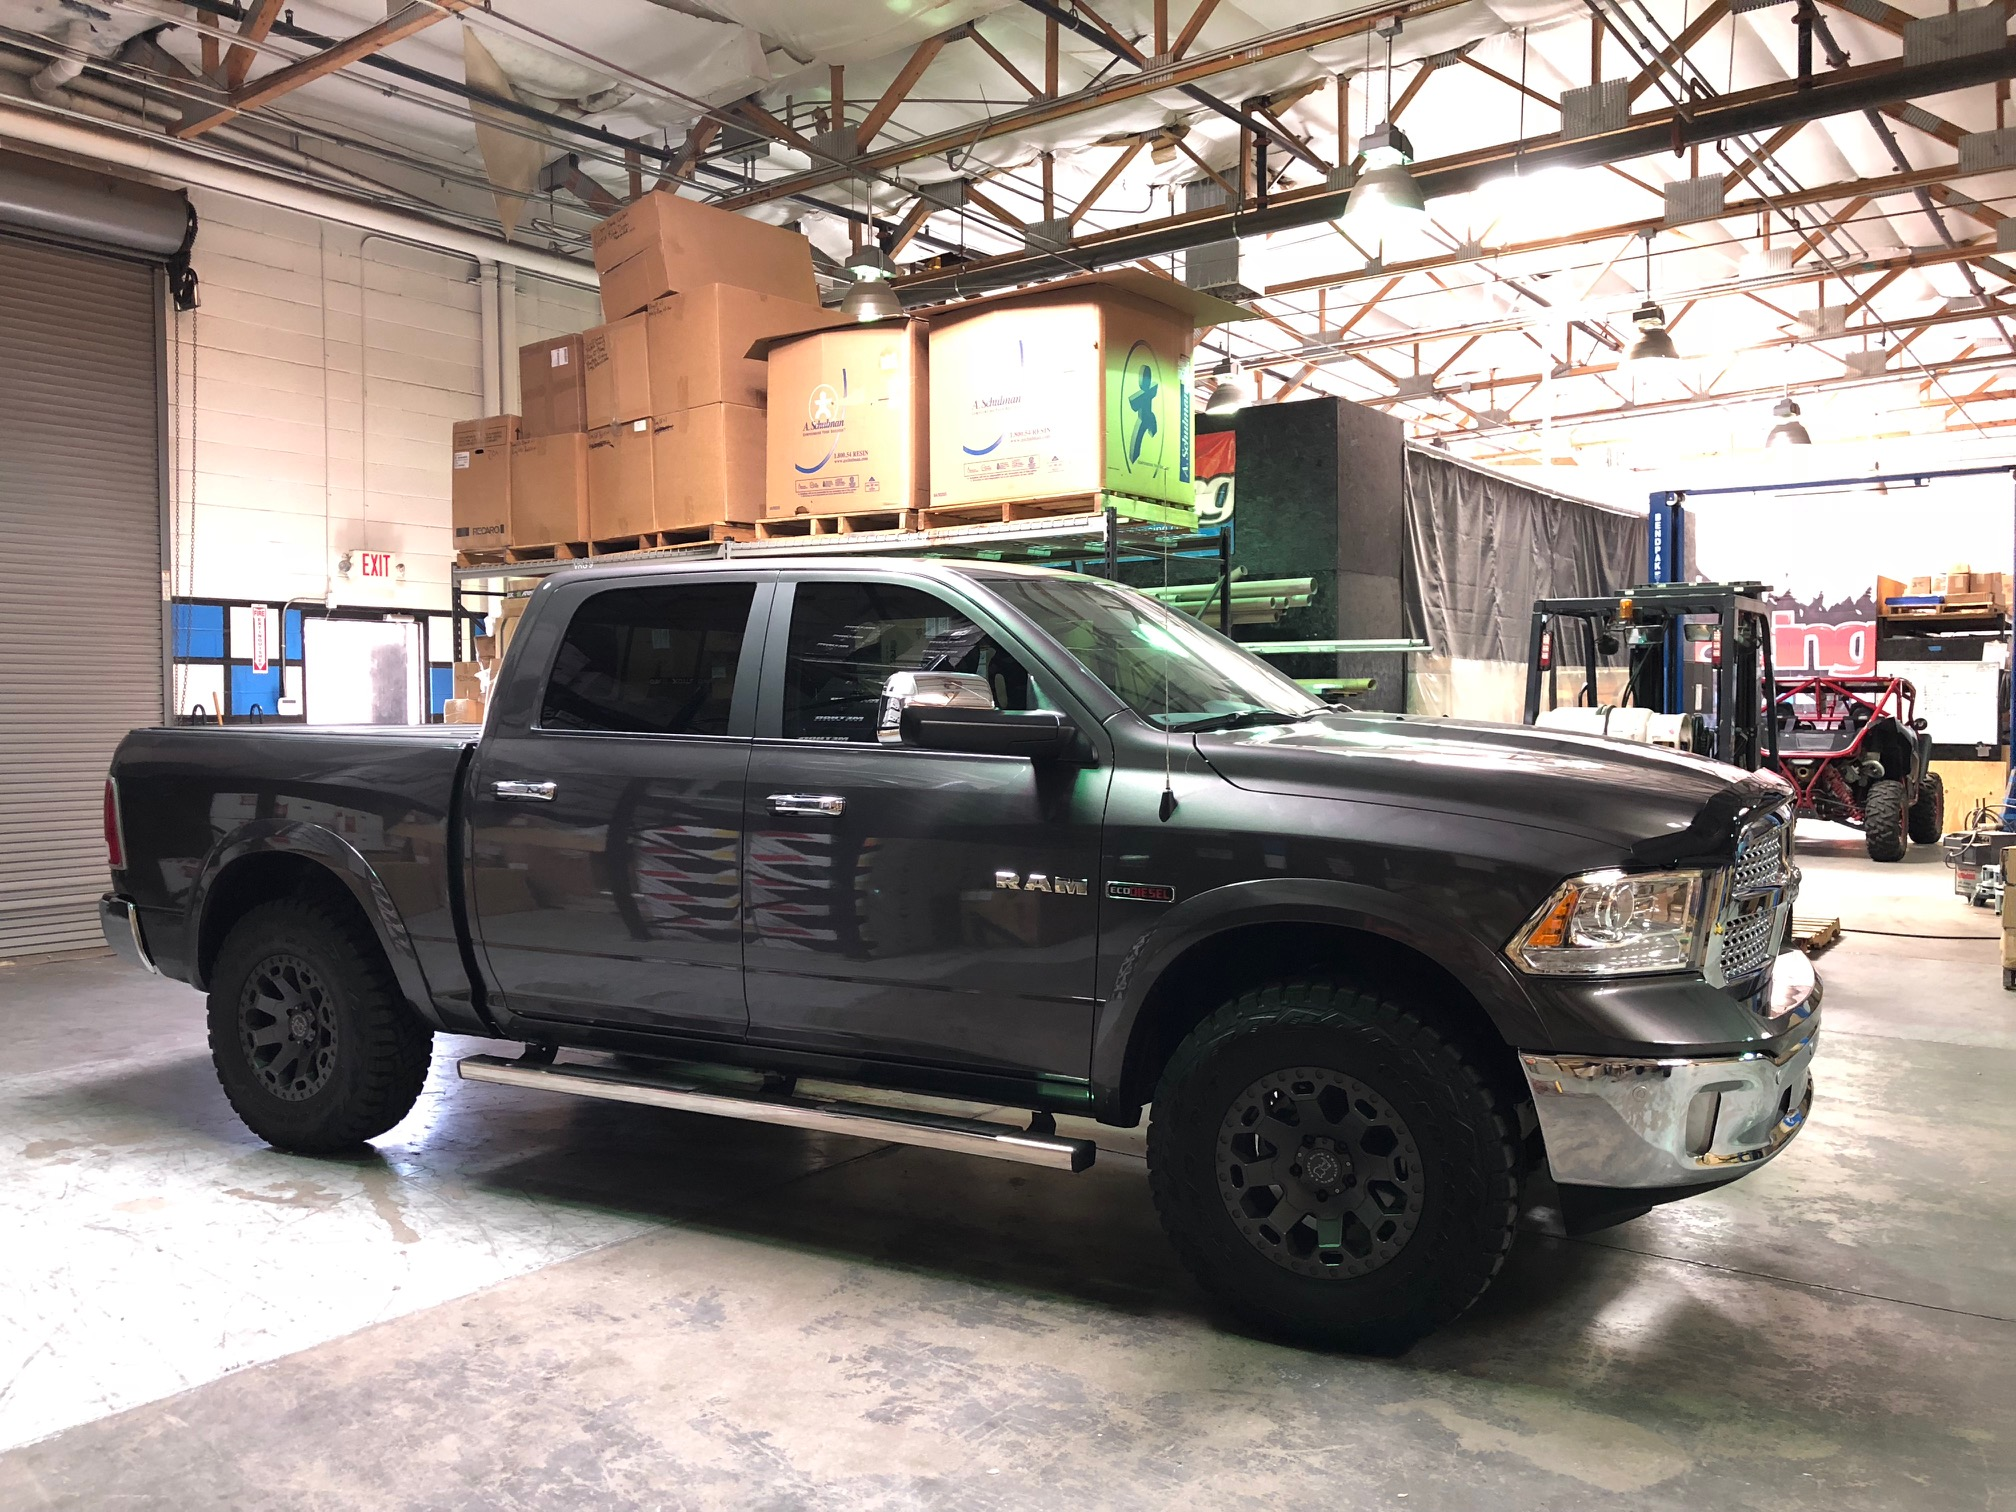 Dodge Ram Ecodiesel >> Dodge Ram Ecodiesel Ecu Removal For Tuning